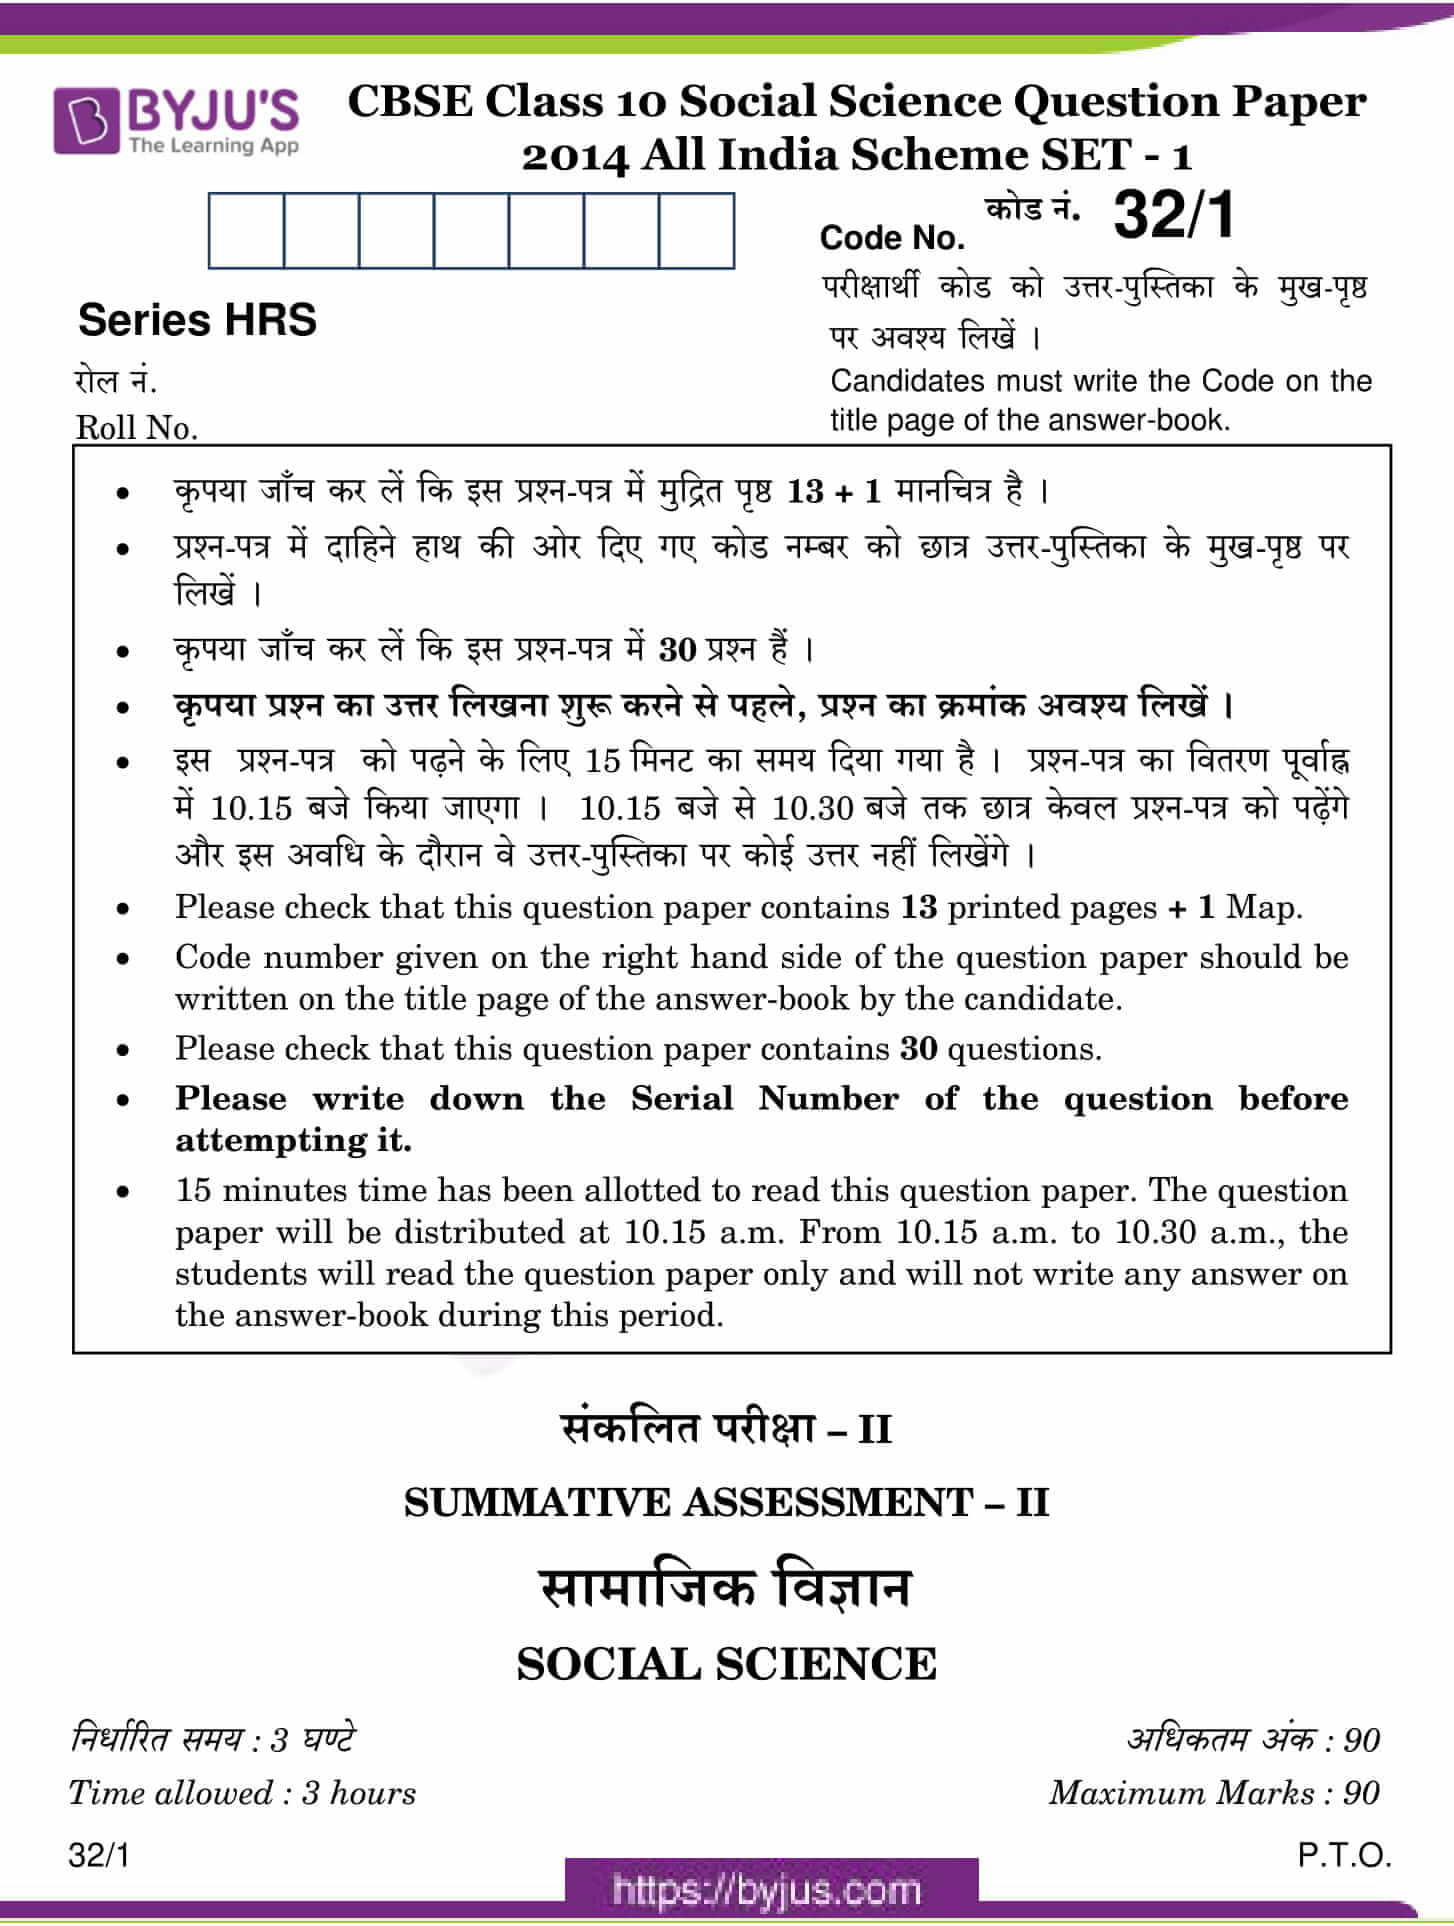 Cbse Class 10 Social Science Previous Year Question Paper 2014 With Solutions Free Pdf